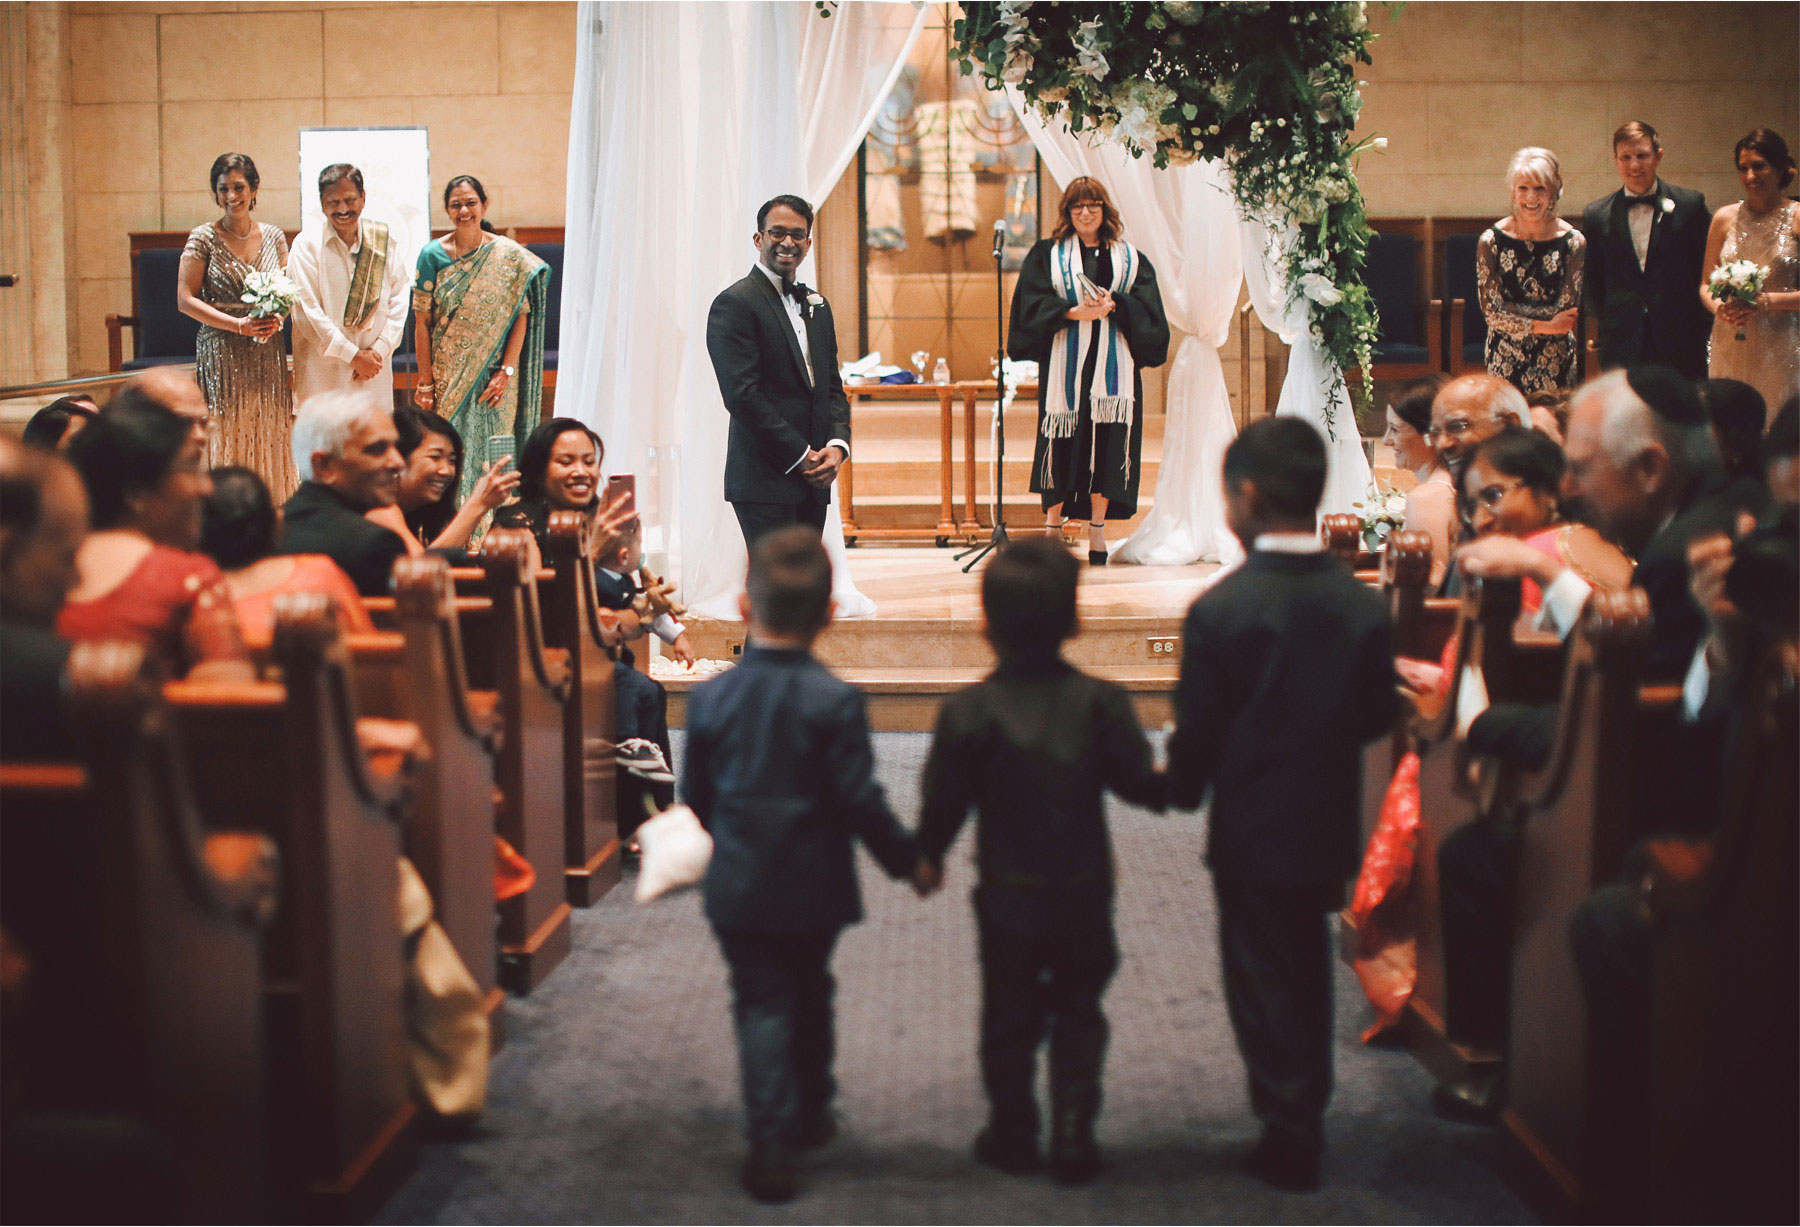 12-Minneapolis-Minnesota-Wedding-Photographer-by-Andrew-Vick-Photography--Spring-Temple-Israel-Synagogue-Ceremony-Groom-Ring-Bearer-Chuppah-Family-Vintage-Rachel-and-Venu.jpg